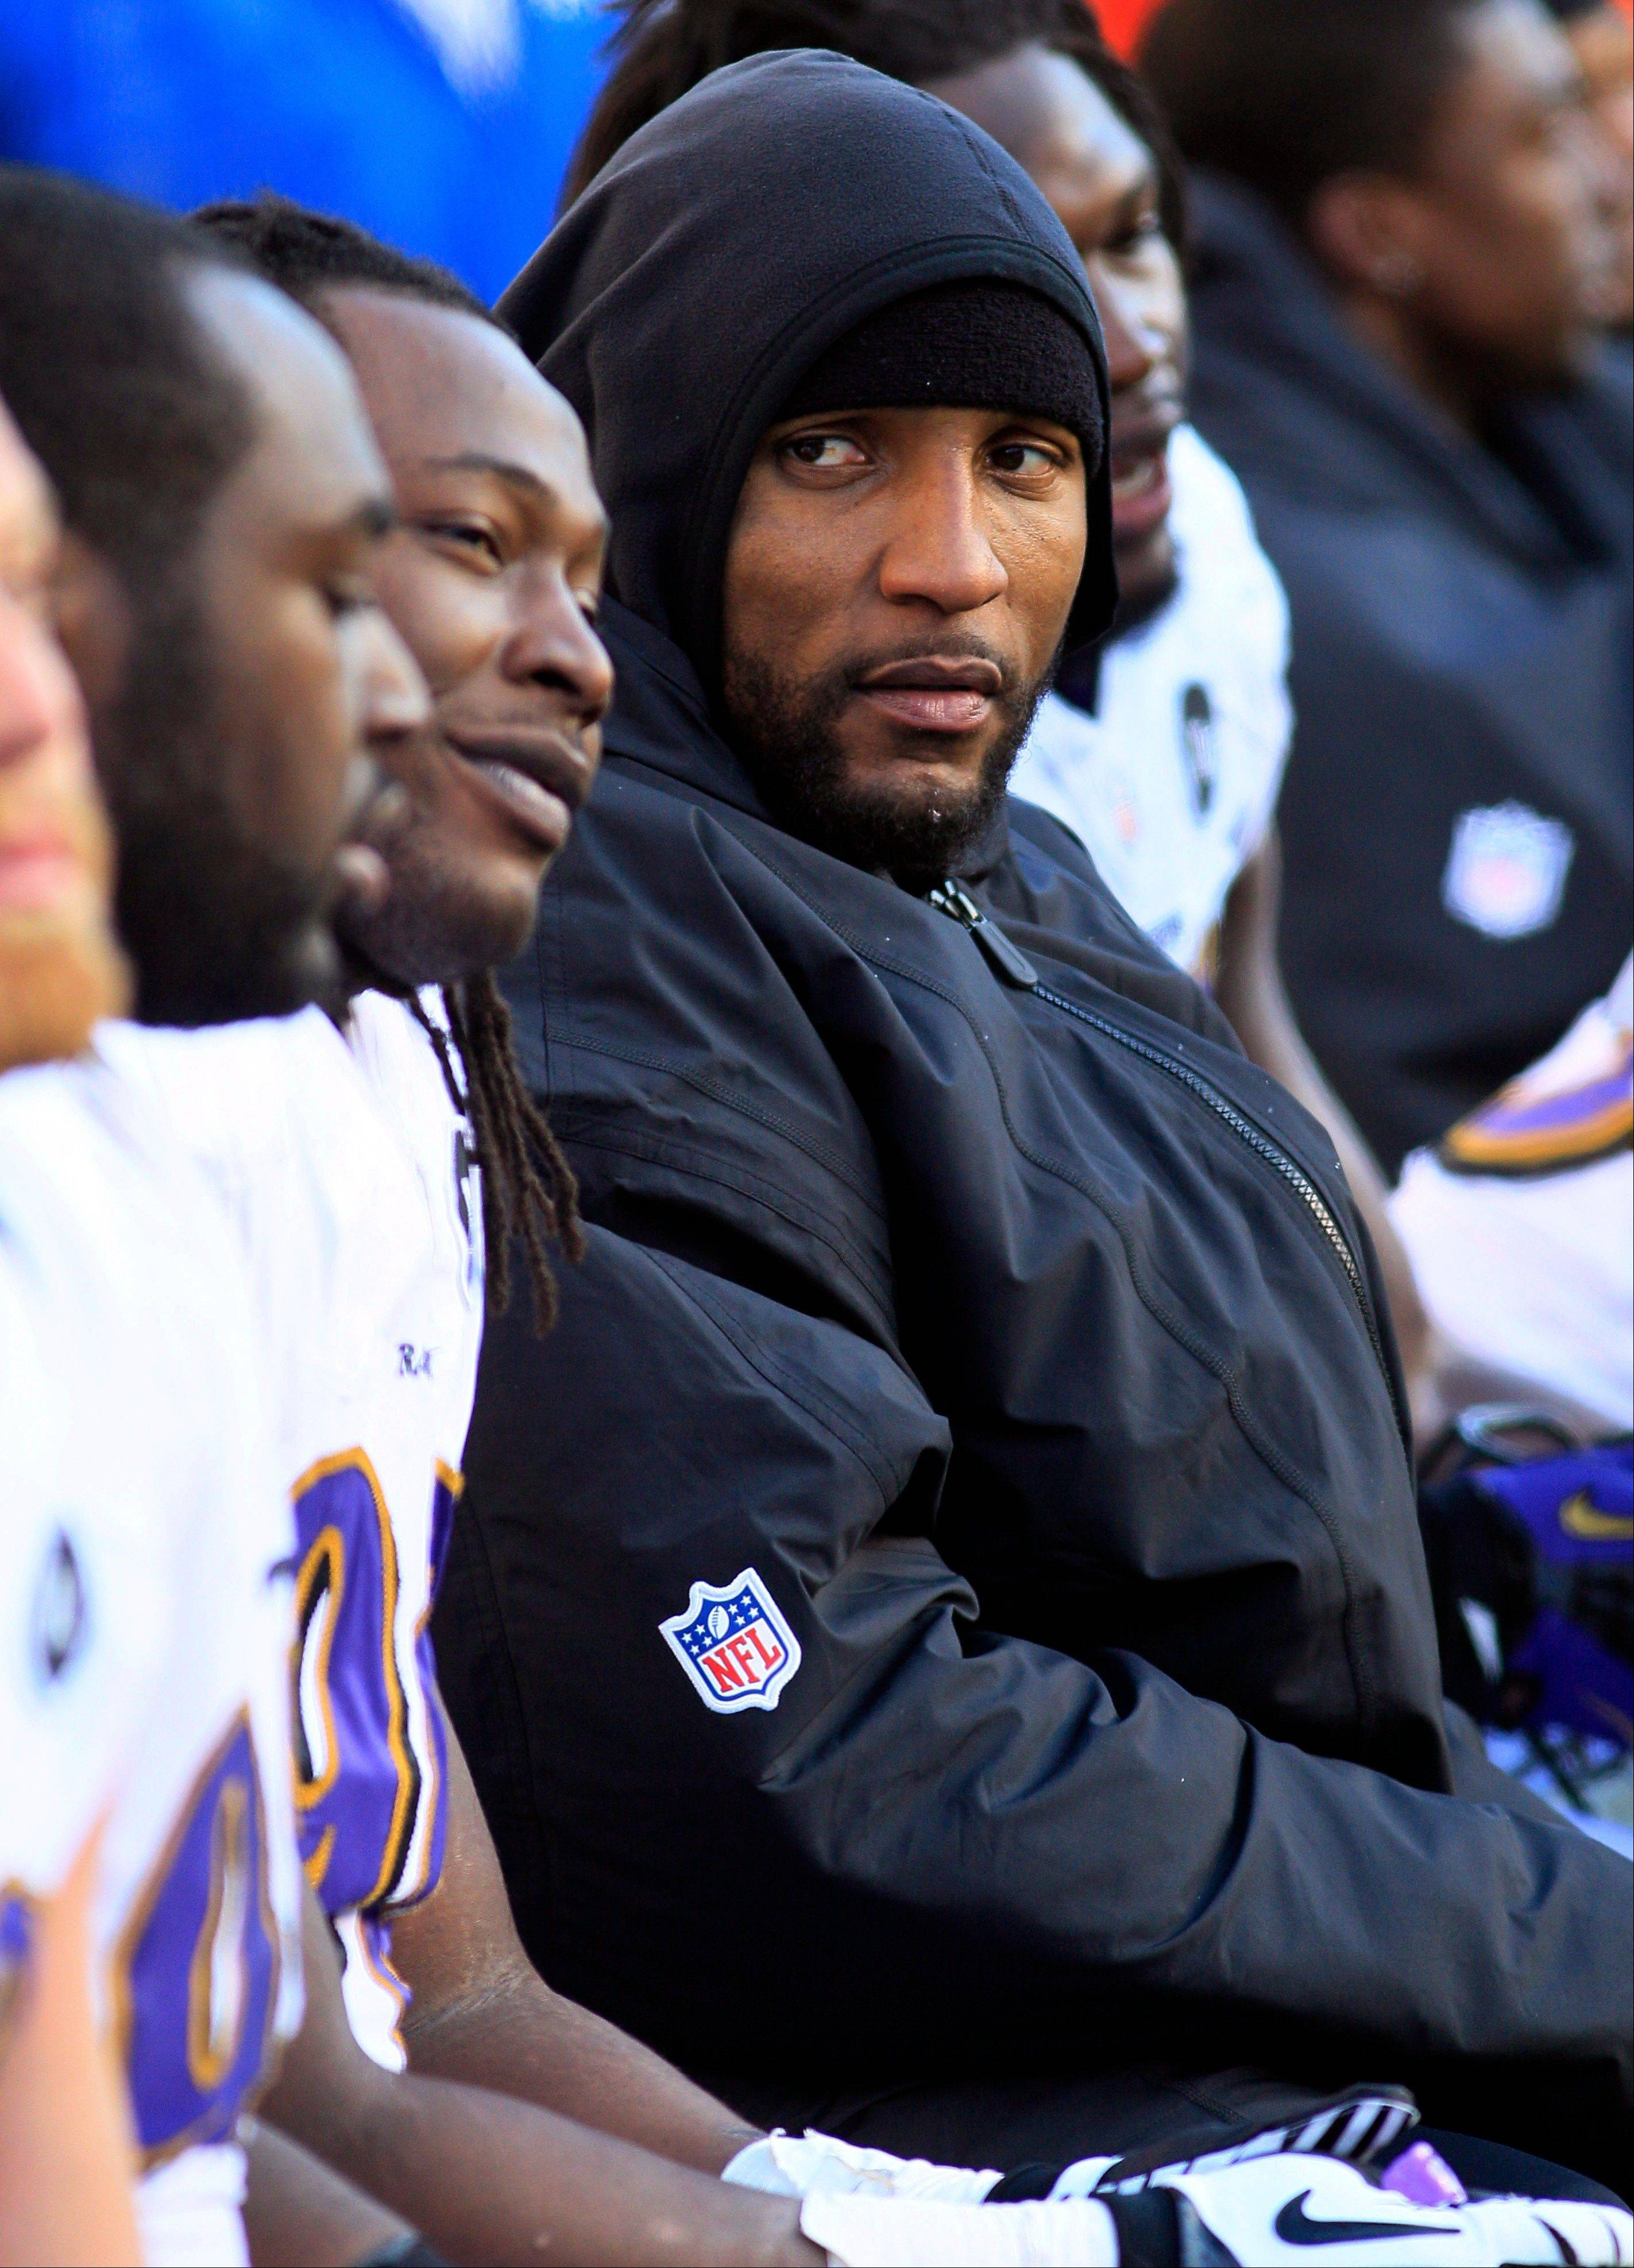 Baltimore Ravens inside linebacker Ray Lewis sits on the bench Sunday during the second half against the Cincinnati Bengals in Cincinnati. Lewis plans to retire at the end of the Ravens' season.